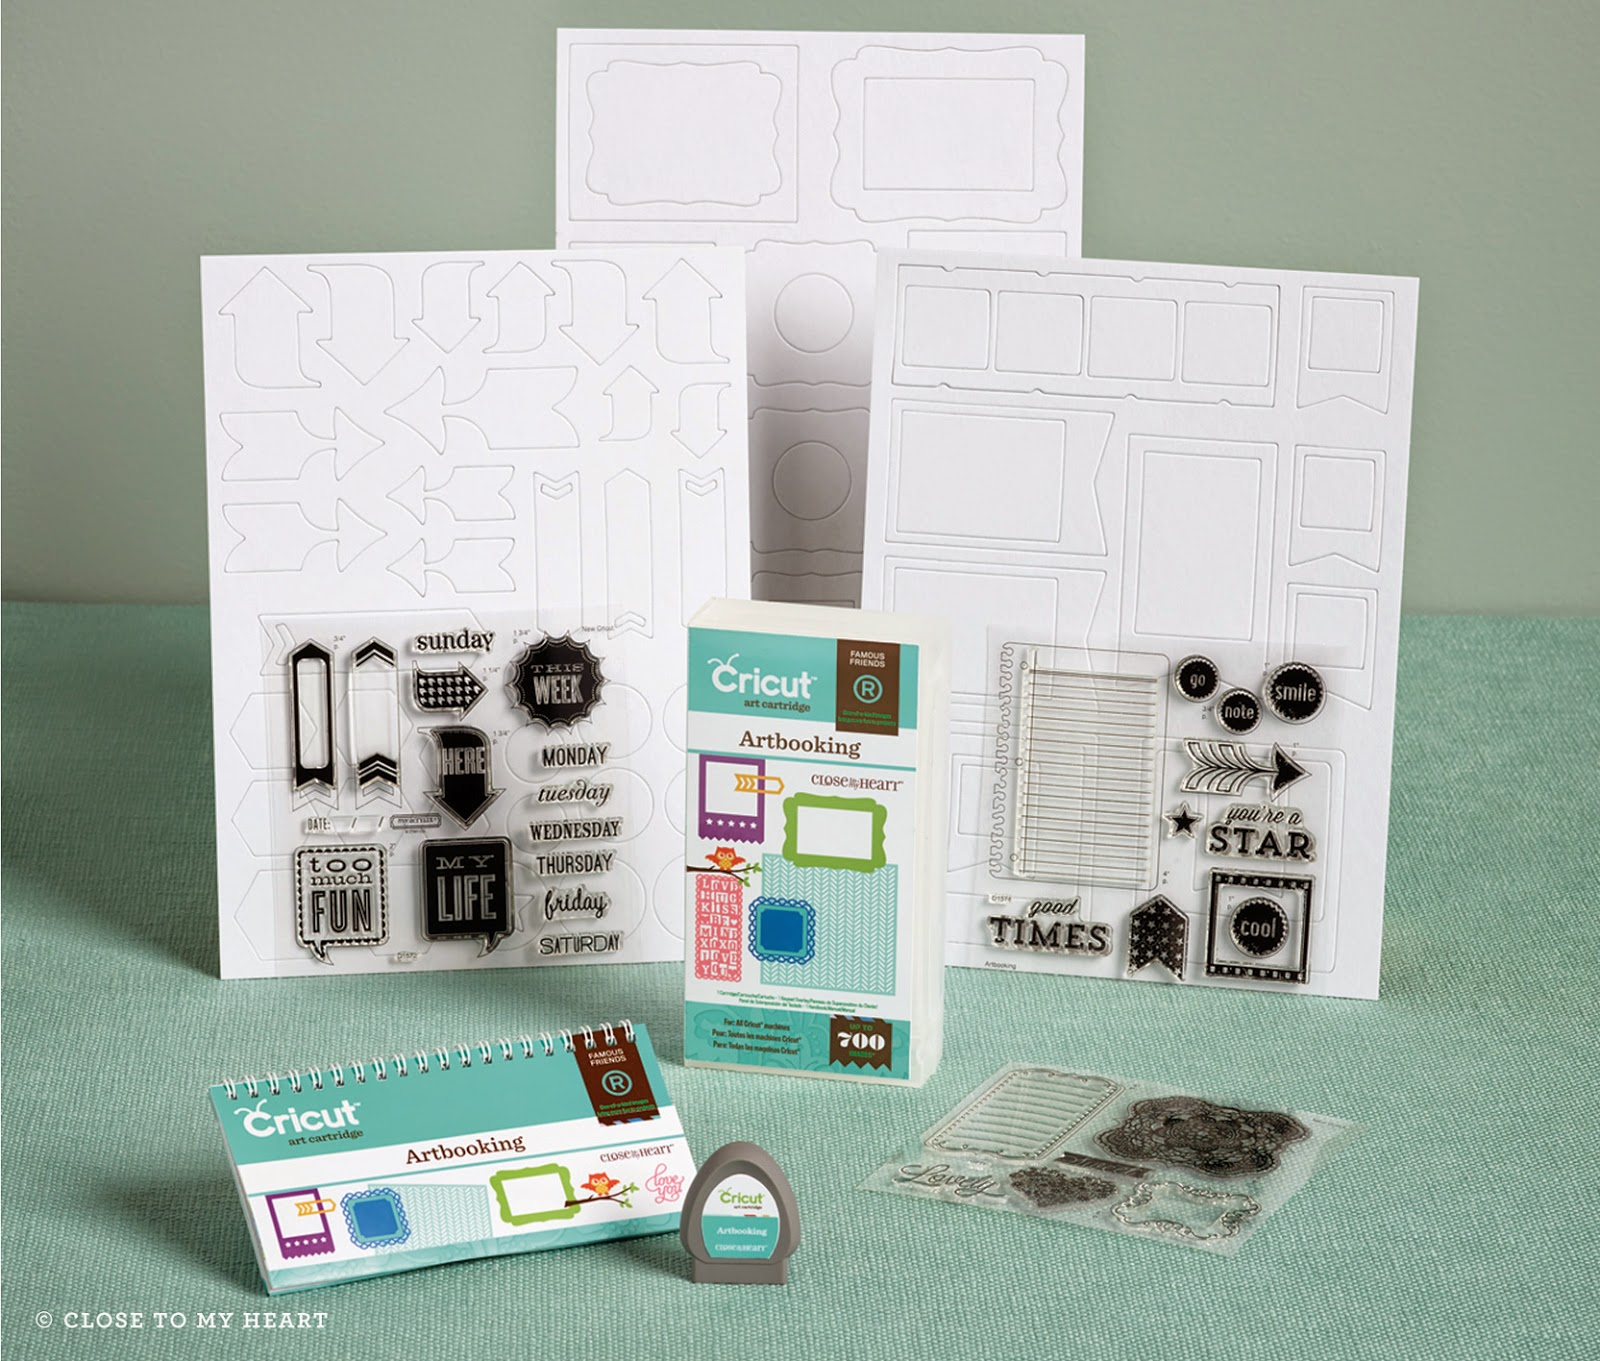 Free Cricut Artbooking Cartridge